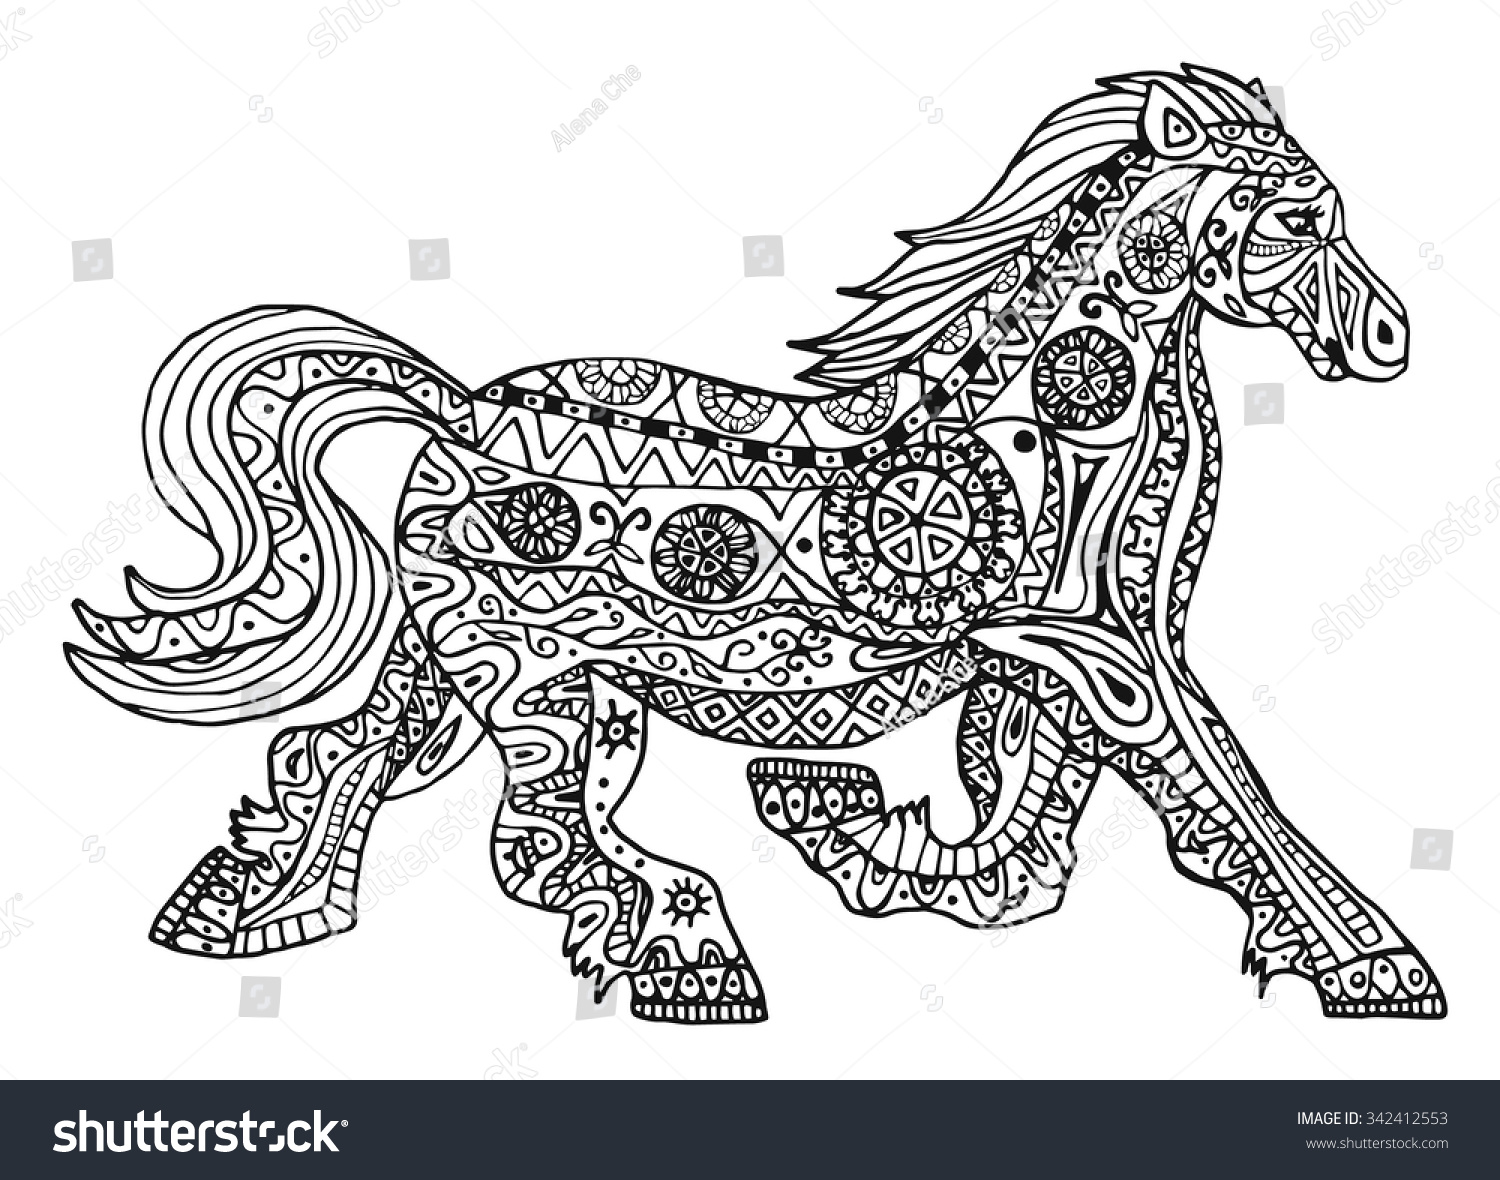 Royalty Free The Black And White Horse Print With 342412553 Stock Photo